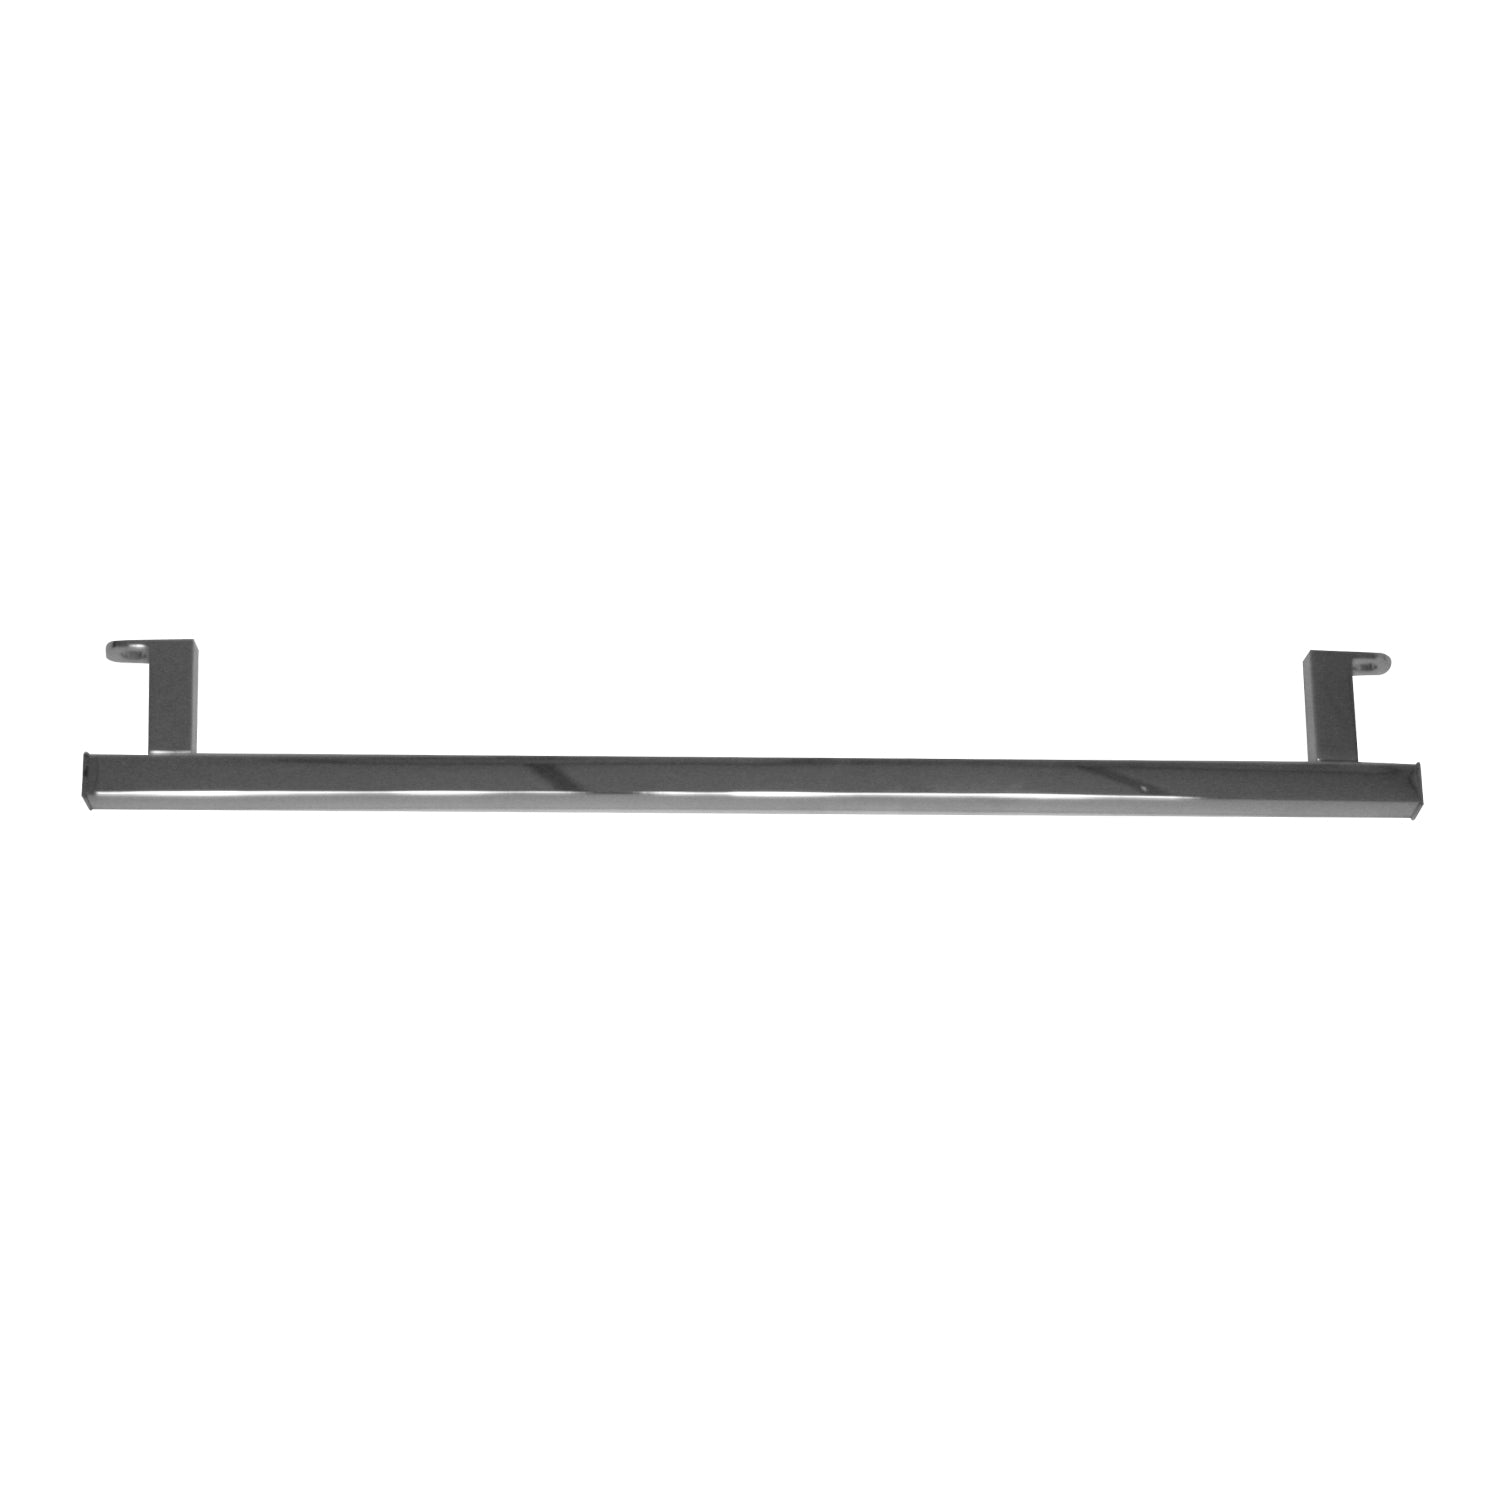 Isabella Collection Small Front Towel Bar for use with models WH1-114L, WH1-114R